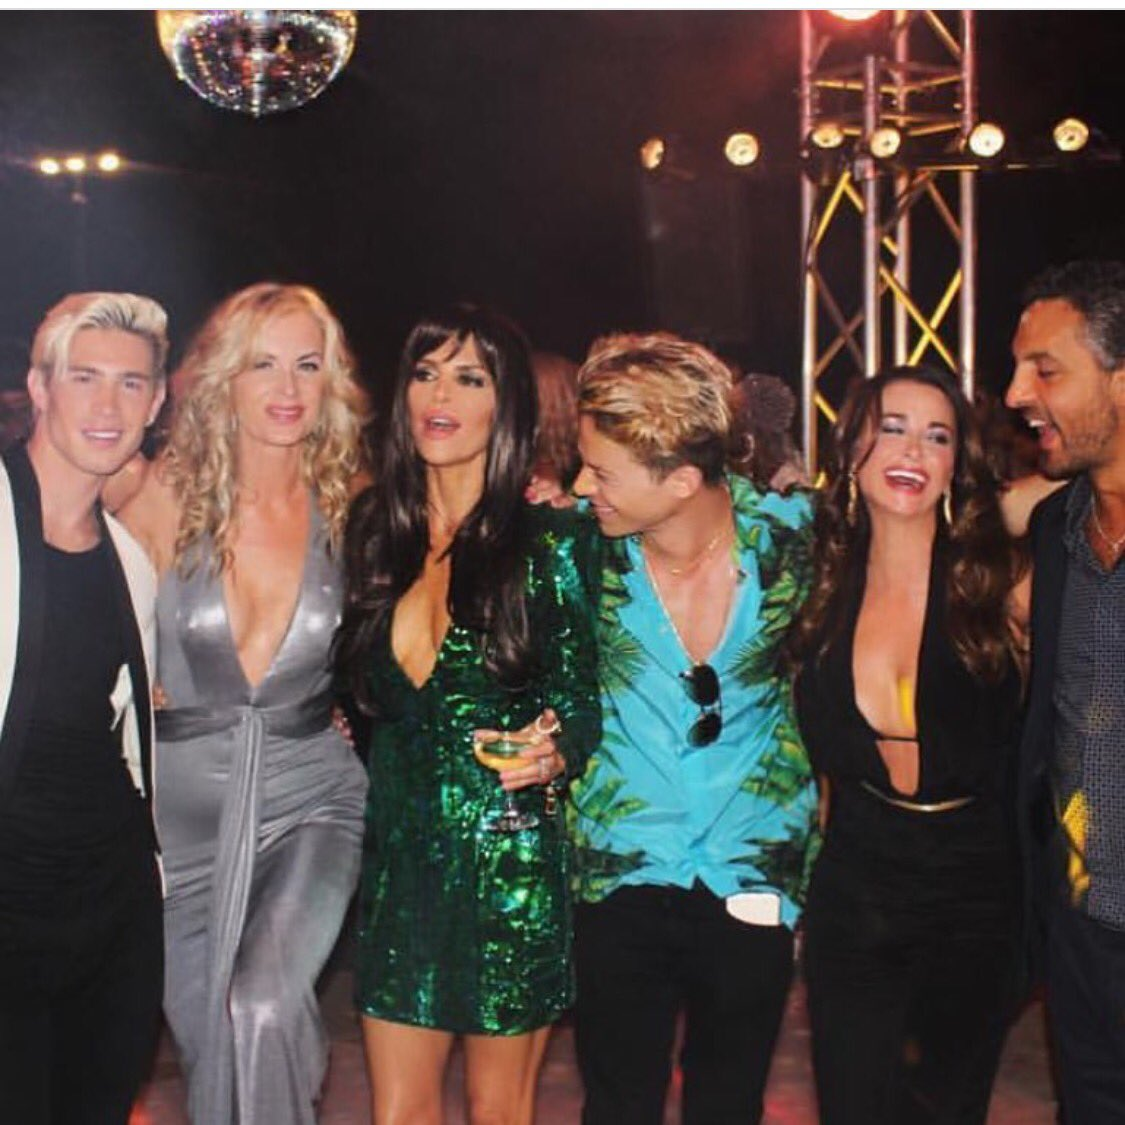 So much fun at @erikajayne Studio 54 Disco Party here with @eileen_davidson and @KyleRichards @MauricioUmansky ???? https://t.co/X3WPtMHCVK